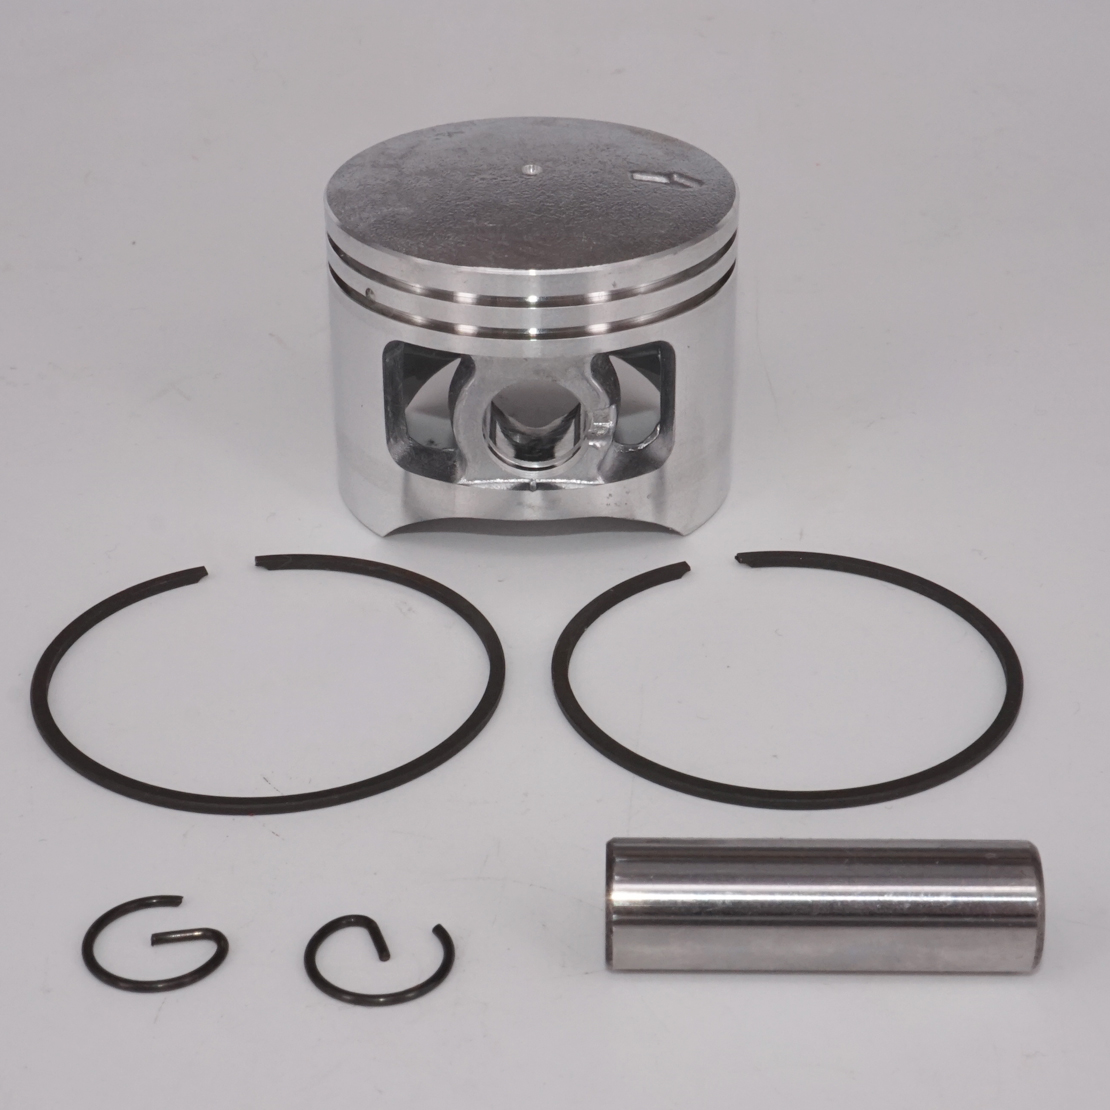 LETAOSK 45mm Piston & Pin & Circlip & Ring Kits Fit For Chinese 4500 5200 5800 45cc 52cc 58cc Chainsaw